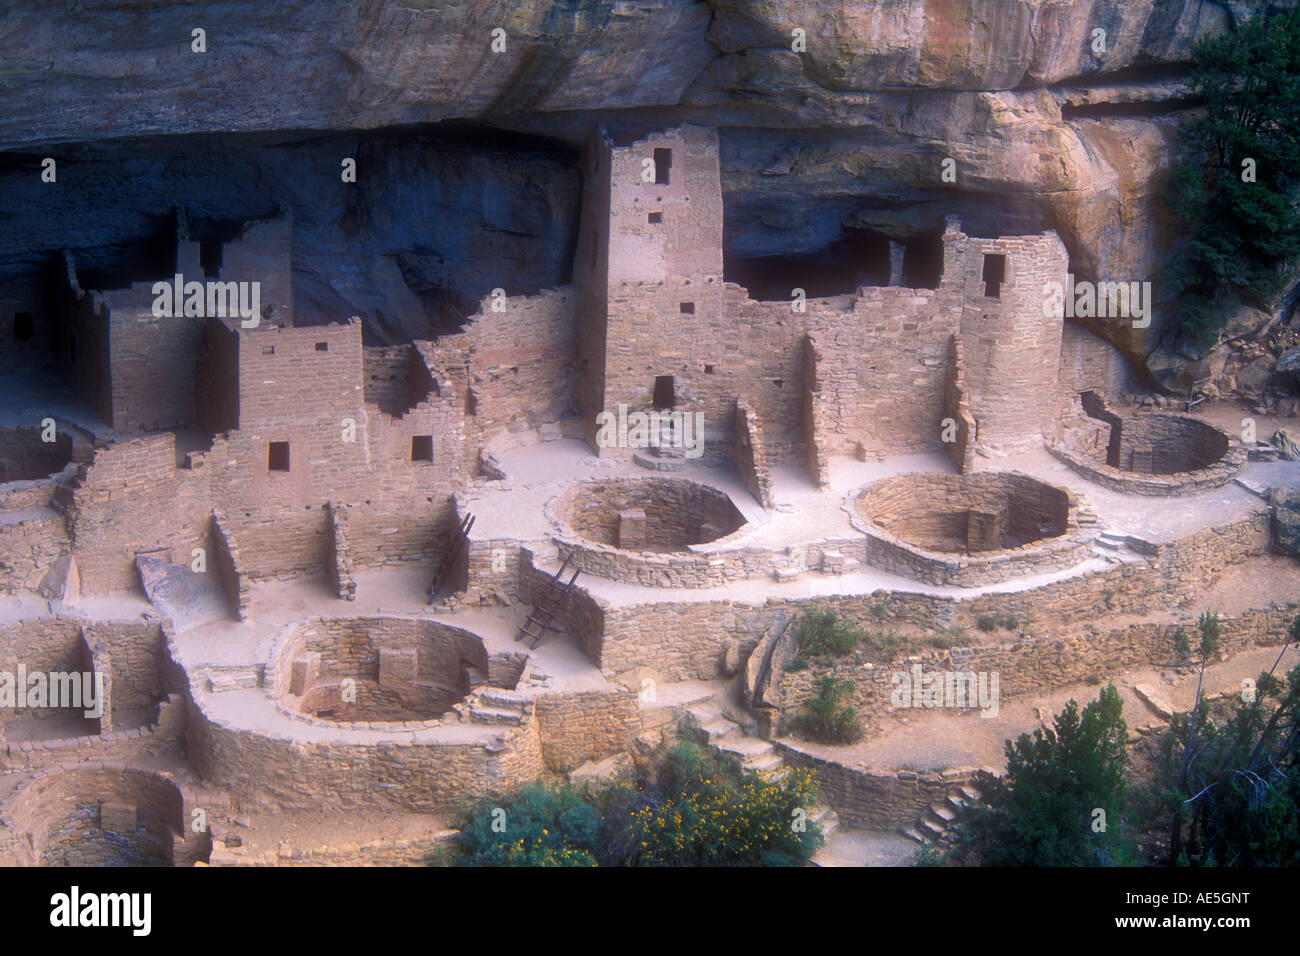 Cliff Palace ancient stone ruins and kivas in village built into cliff by Anasazi Ancestral Puebloans Indians - Stock Image